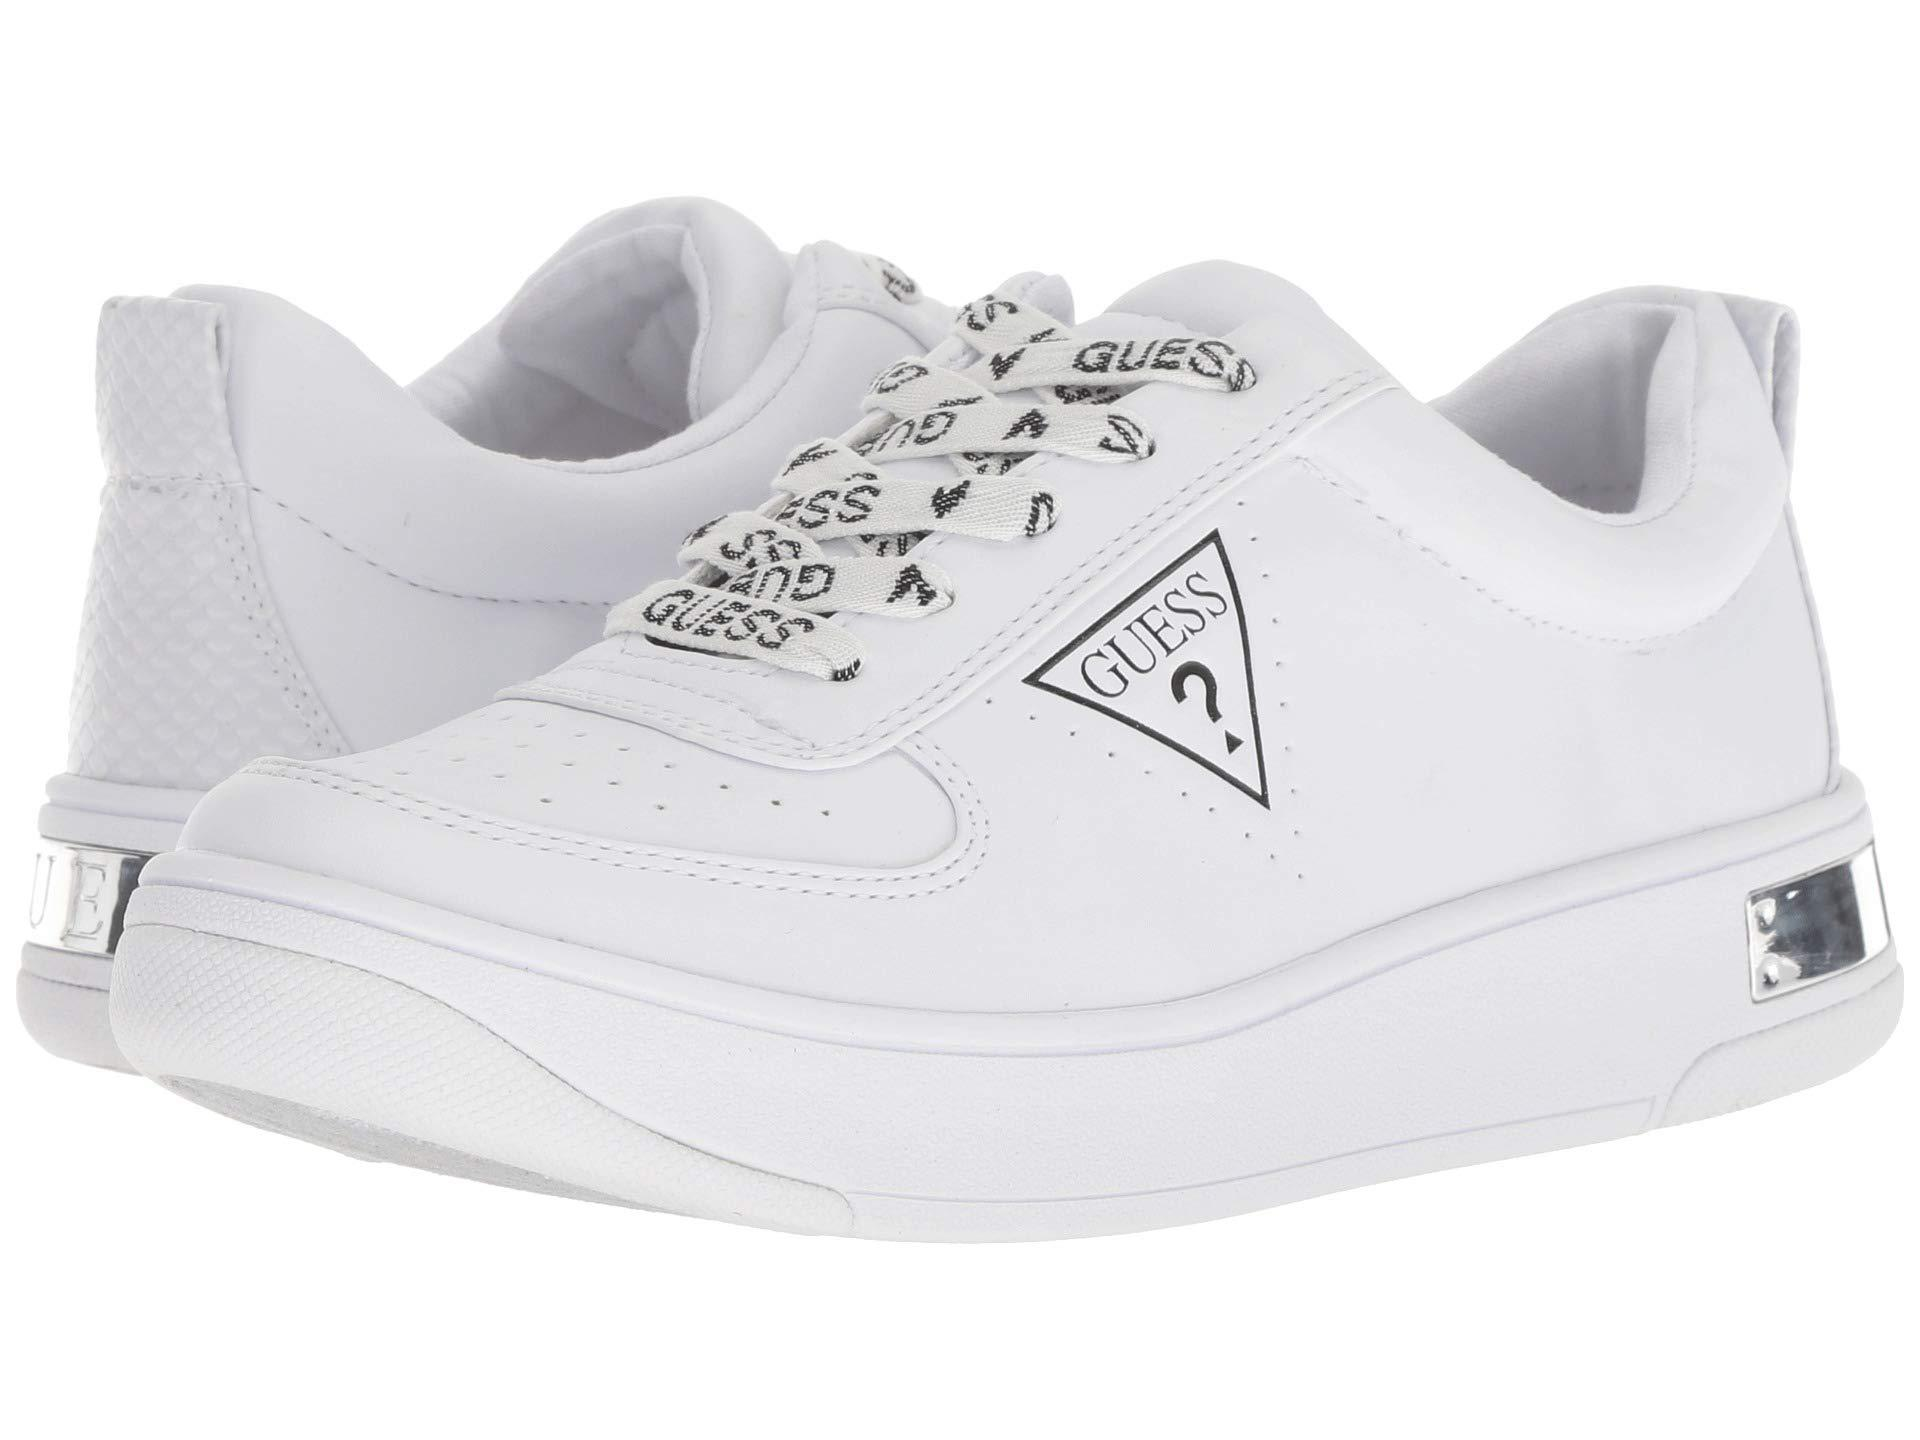 Guess Leather Hype Lace Up Sneakers in